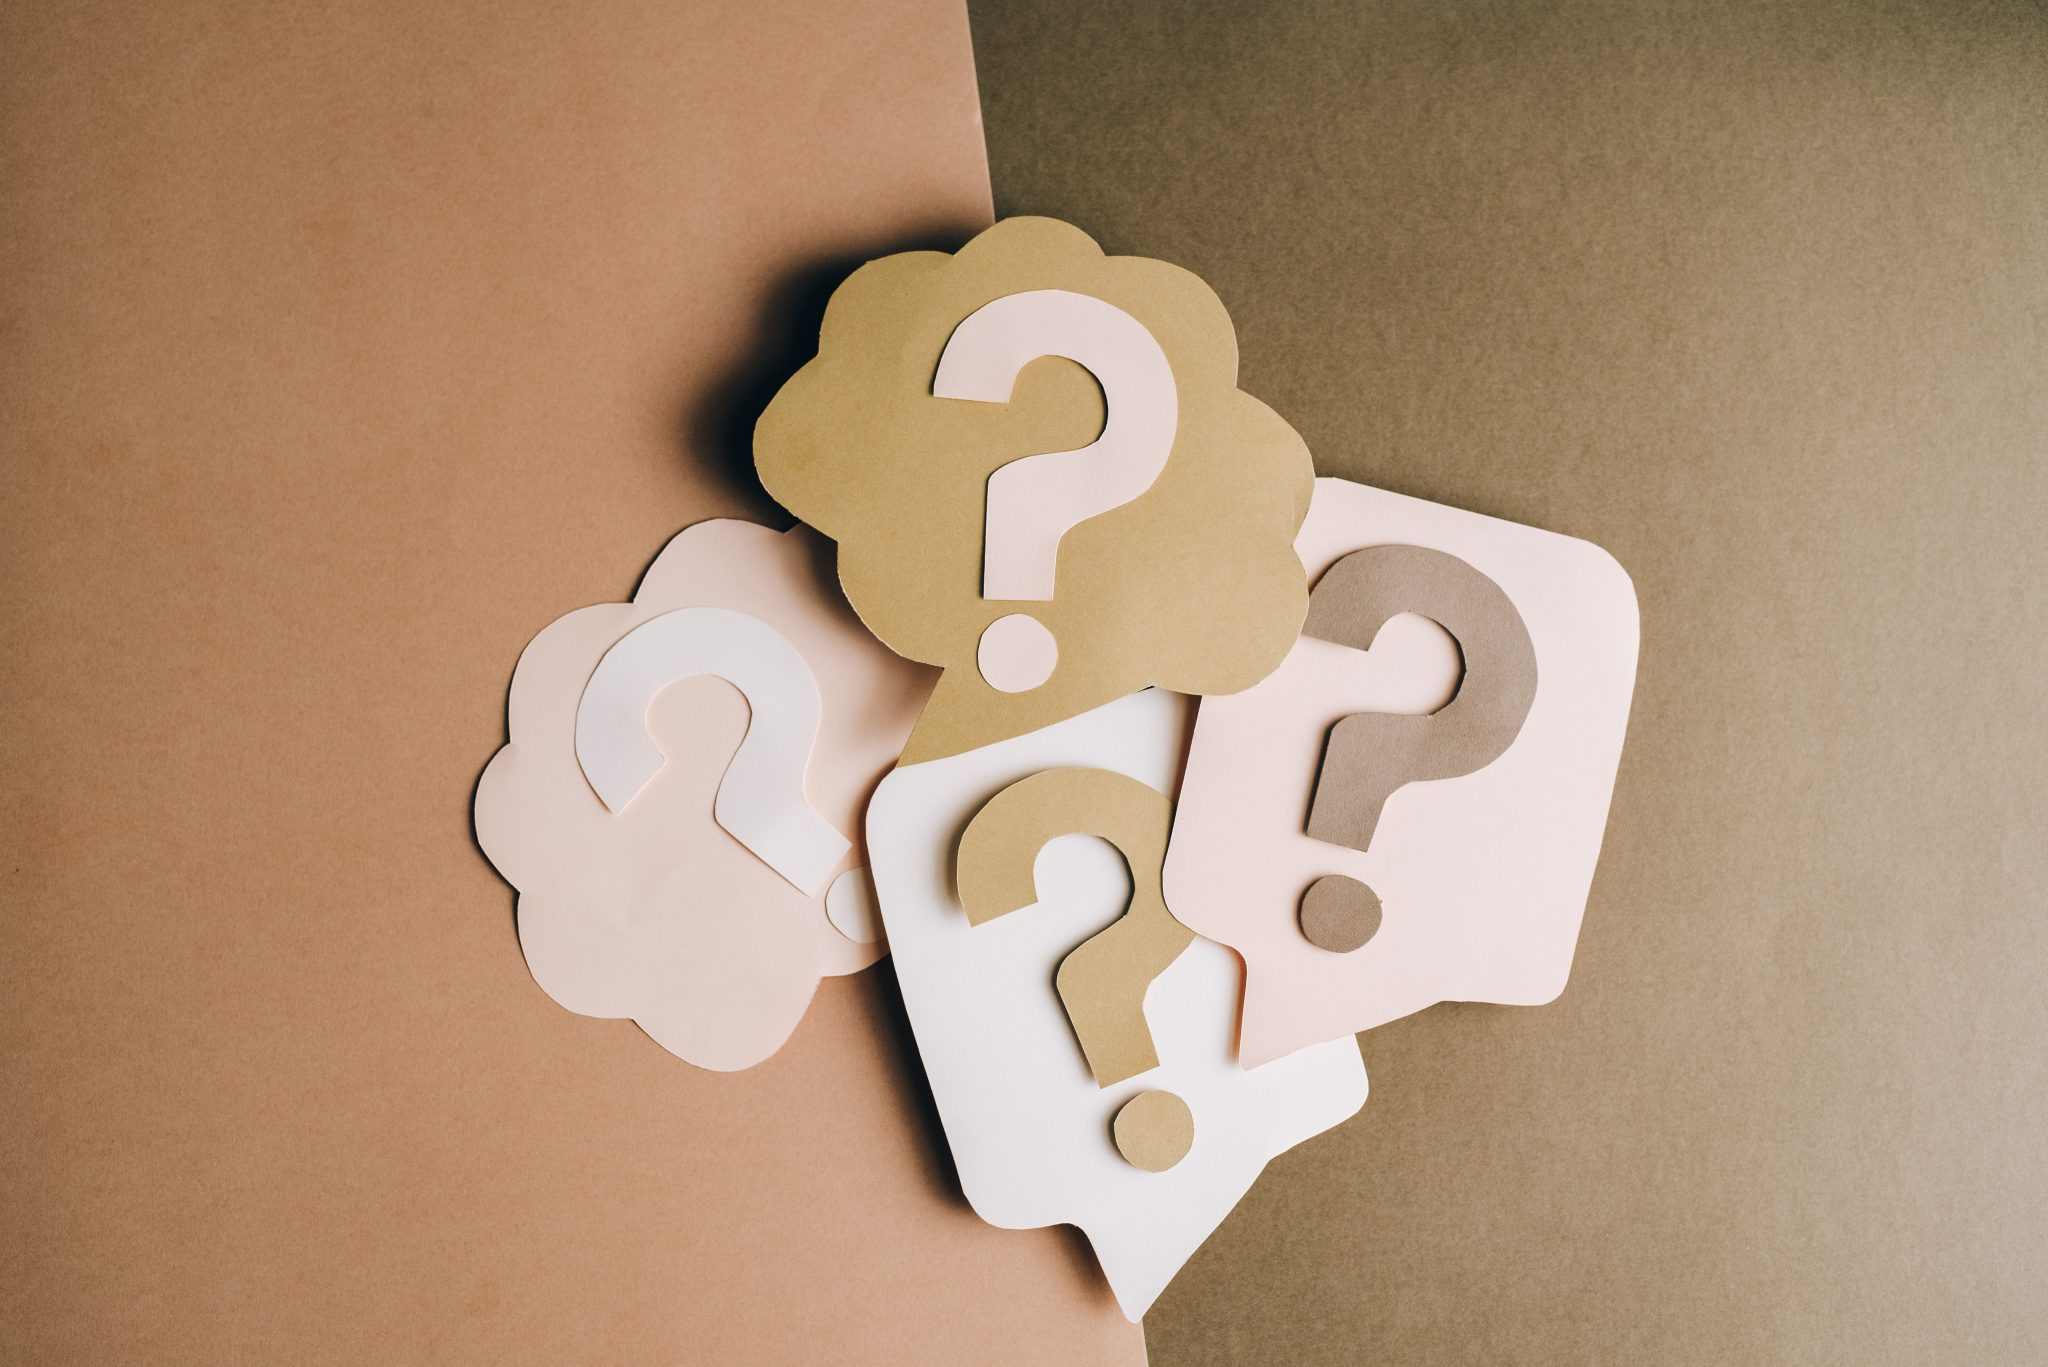 cut out question marks on paper